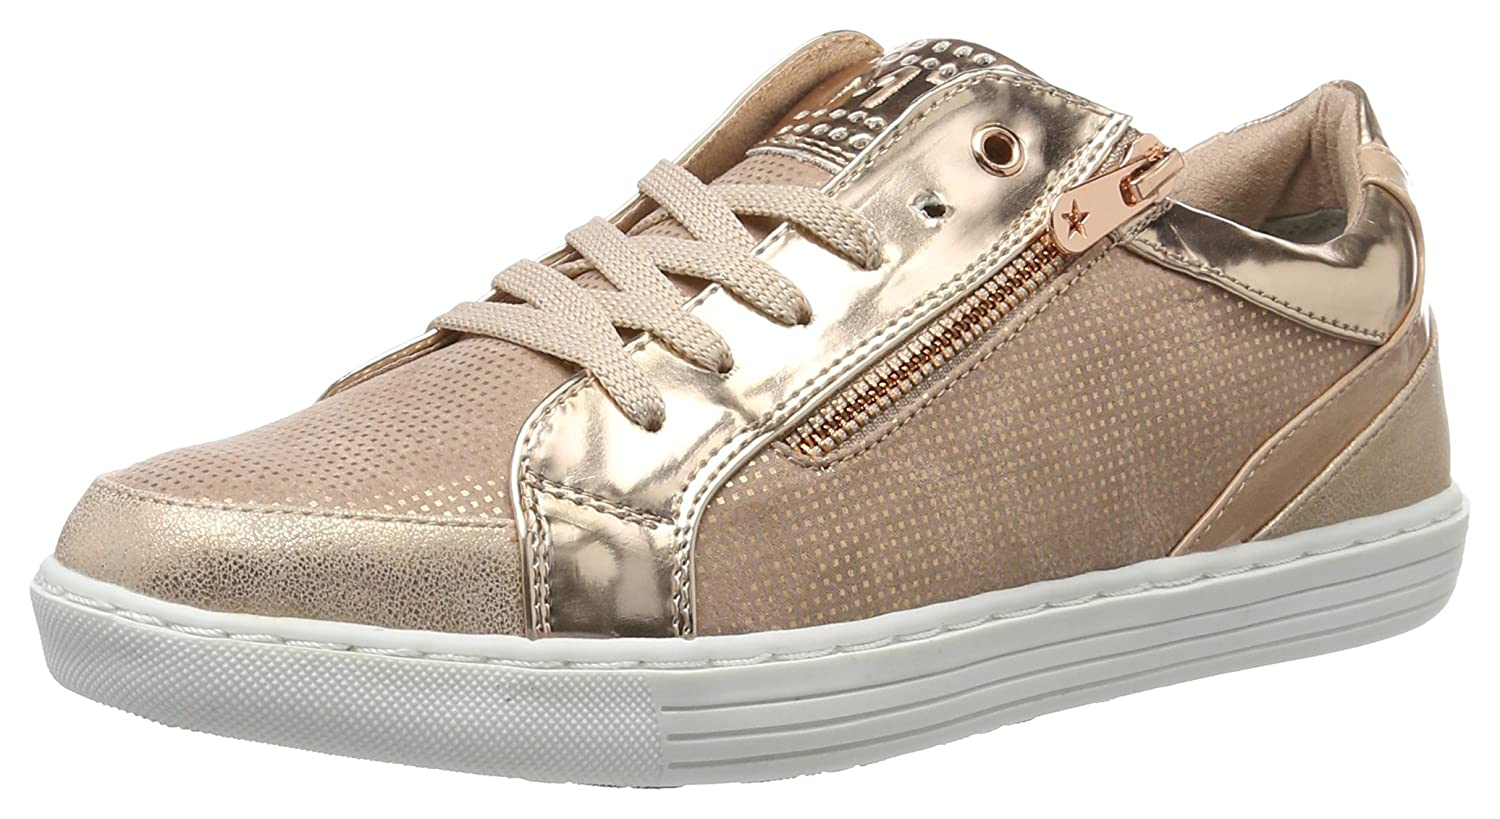 Femme Project Tsf 23600Sneakers jp Basses Tozzi Marco On or Sale E9HID2